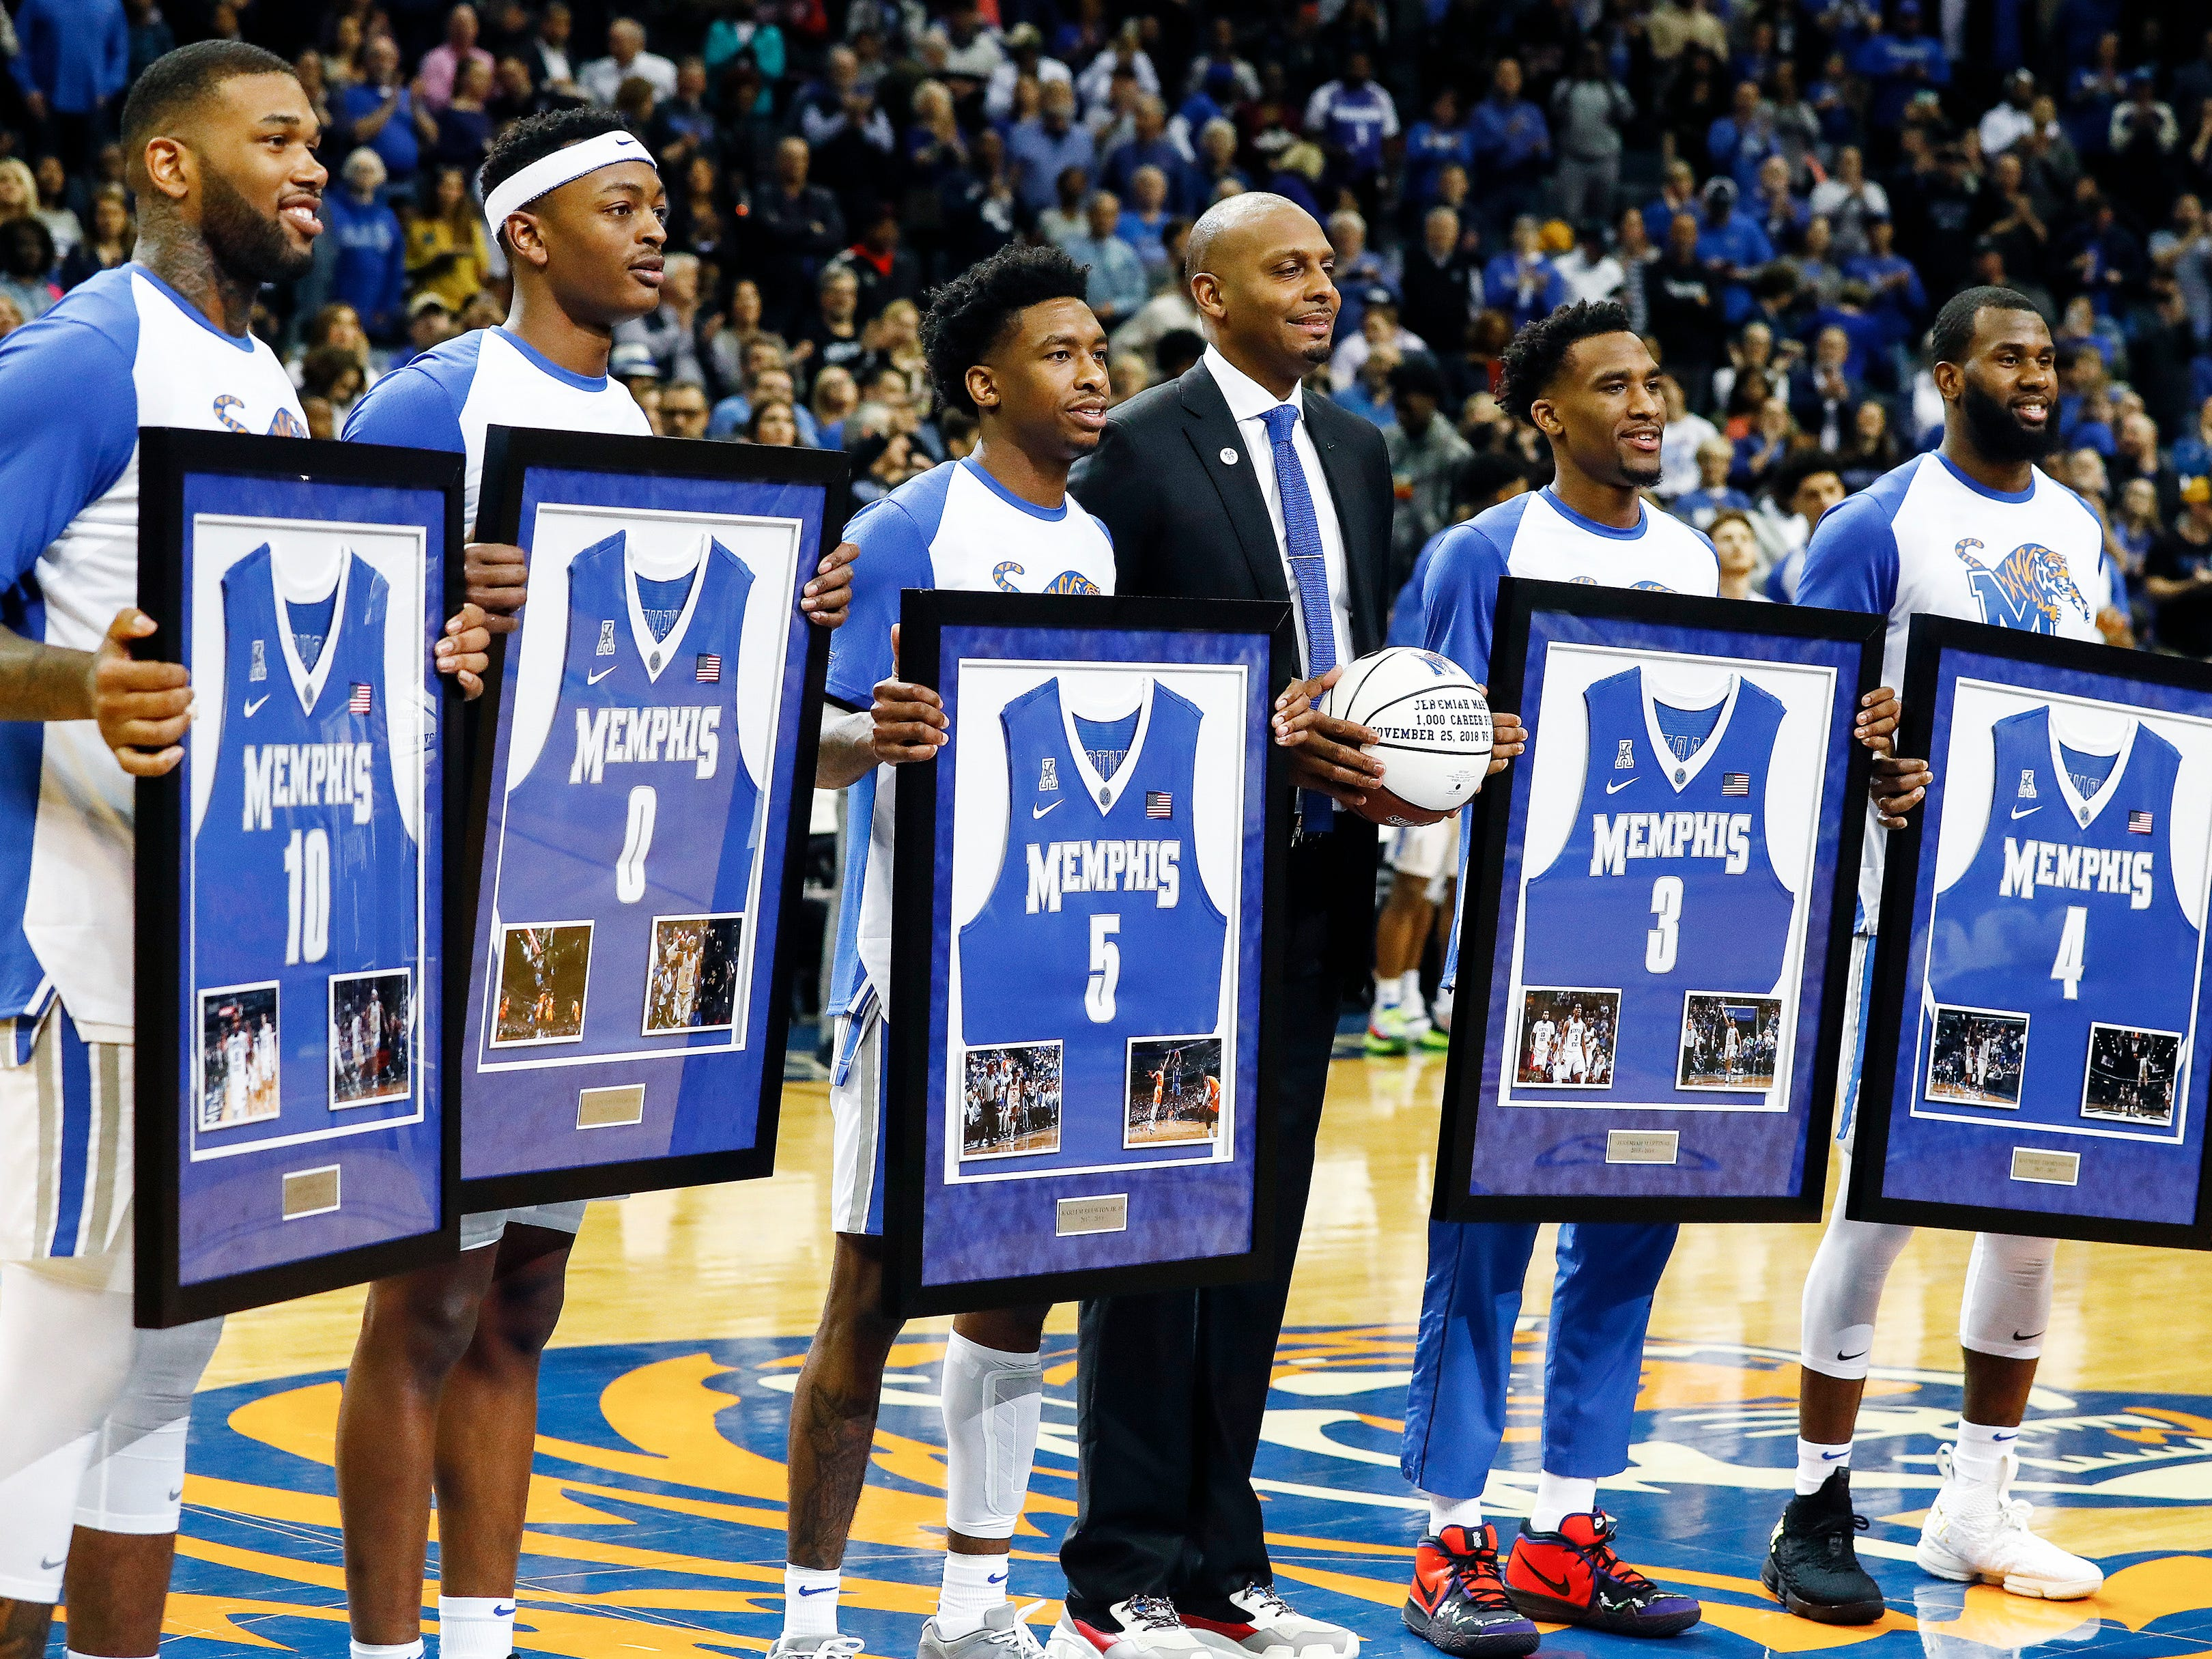 Memphis seniors (left to right) Mike Parks Jr., Kyvon Davenport, Kareem Brewton Jr., Jeremiah Martin and Raynere Thornton are introduced with head coach Penny Hardaway (third right) before taking on Tulsa at the FedExForum, Saturday, March 9, 2019.